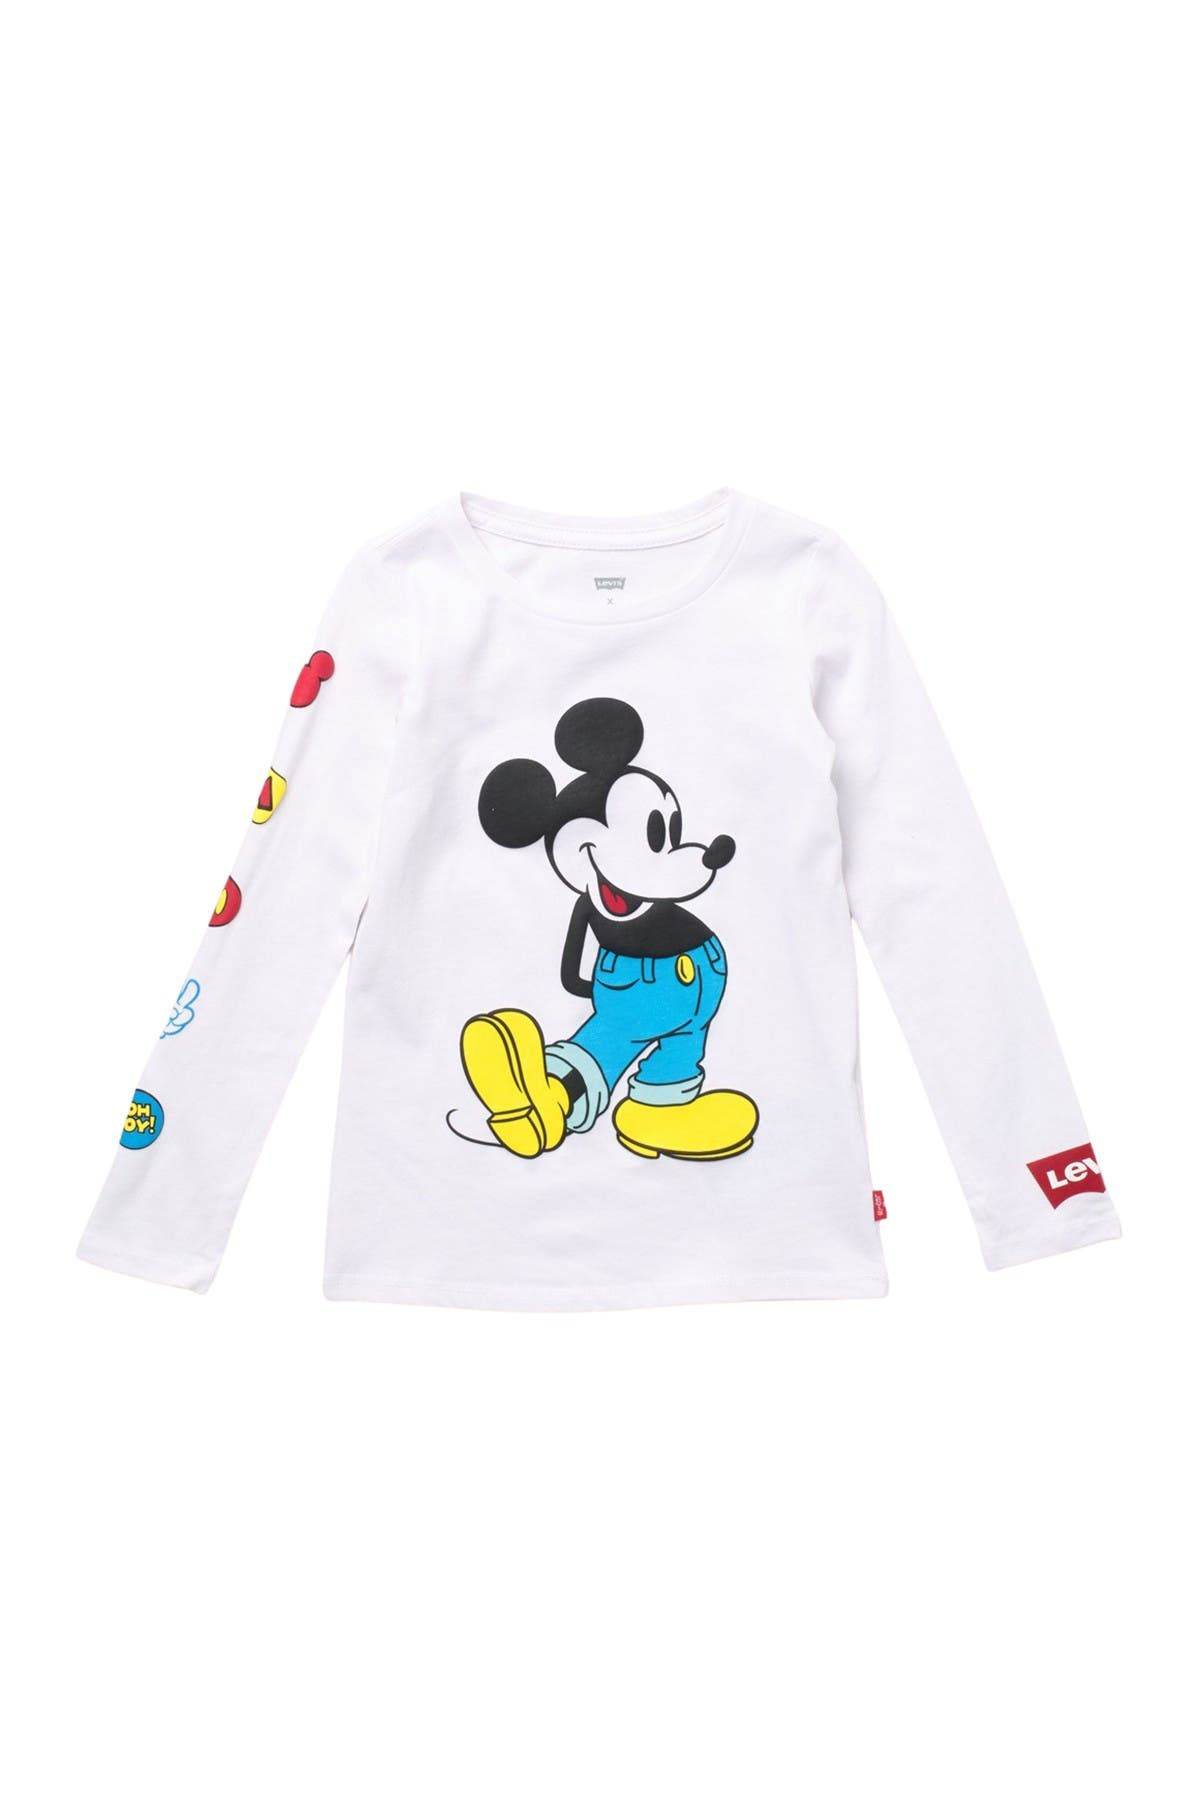 Image of Levi's Long Sleeve Mickey Mouse Graphic Tee